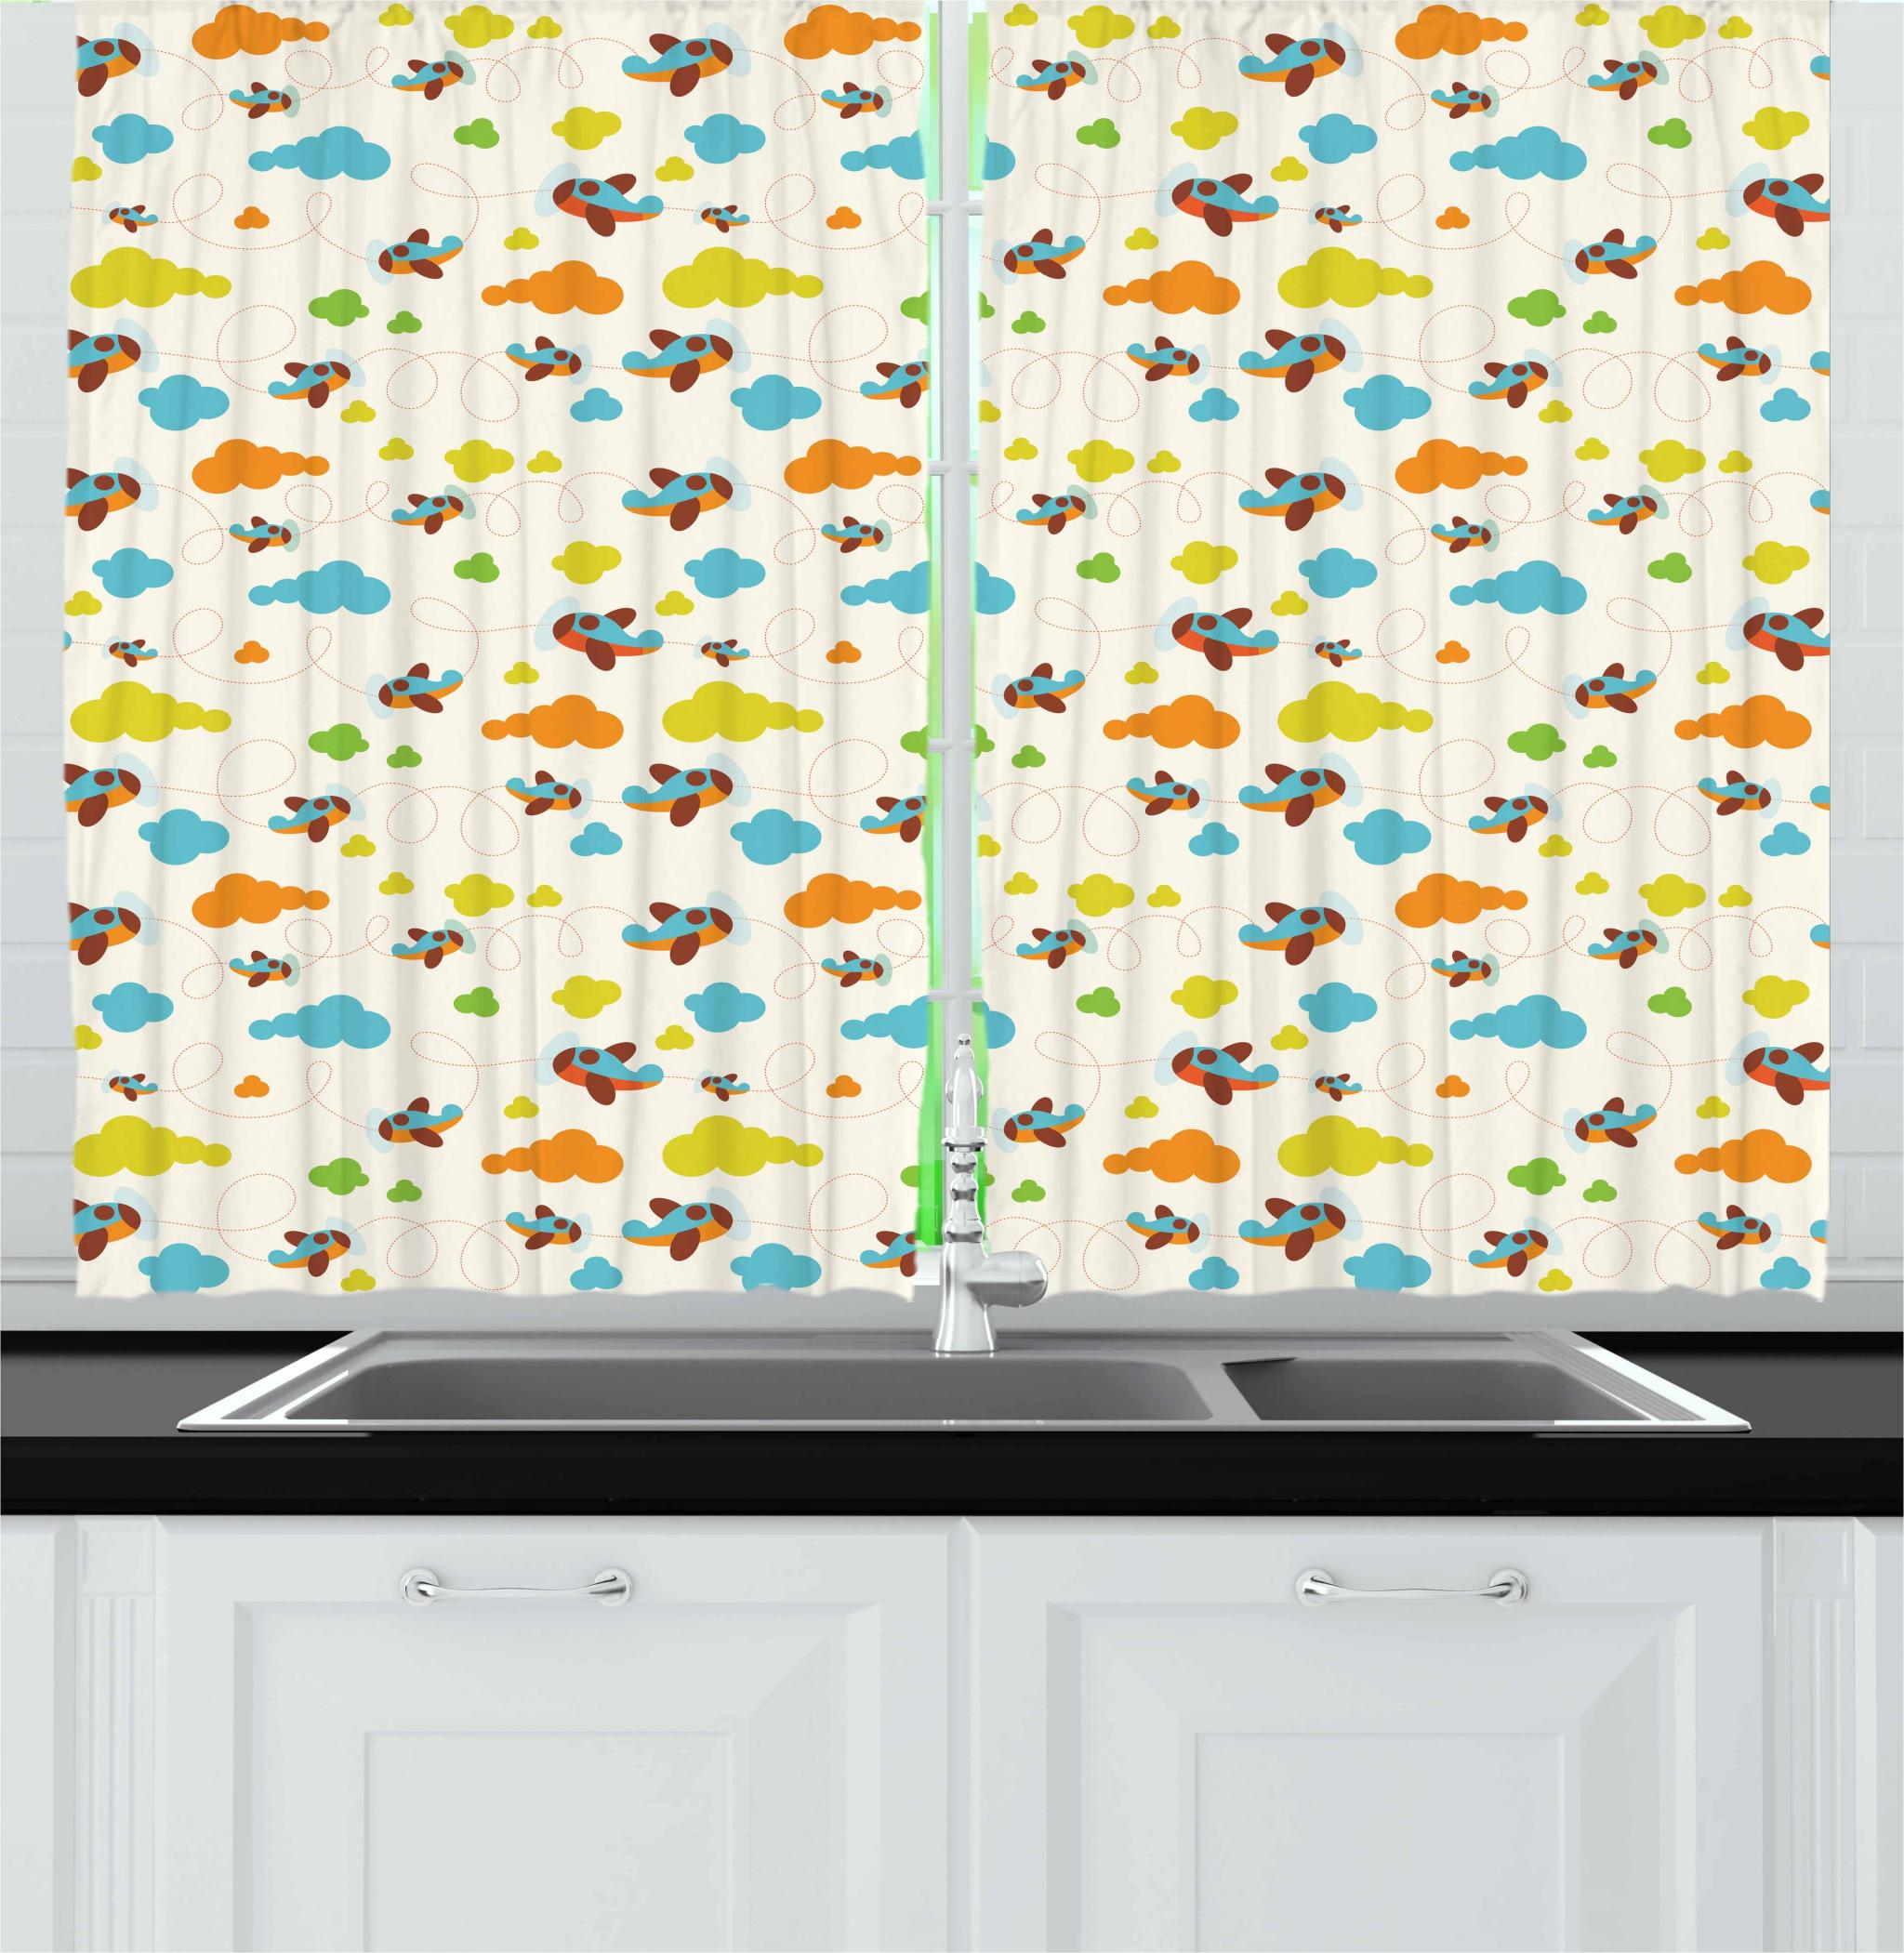 Nursery Airplane Curtains 2 Panels Set, Cheerful Toddler Pattern of Pastel Fluffy Clouds Aircraft and Dashed Lines, Window Drapes for Living Room Bedroom, 55W X 39L Inches, Multicolor, by Ambesonne